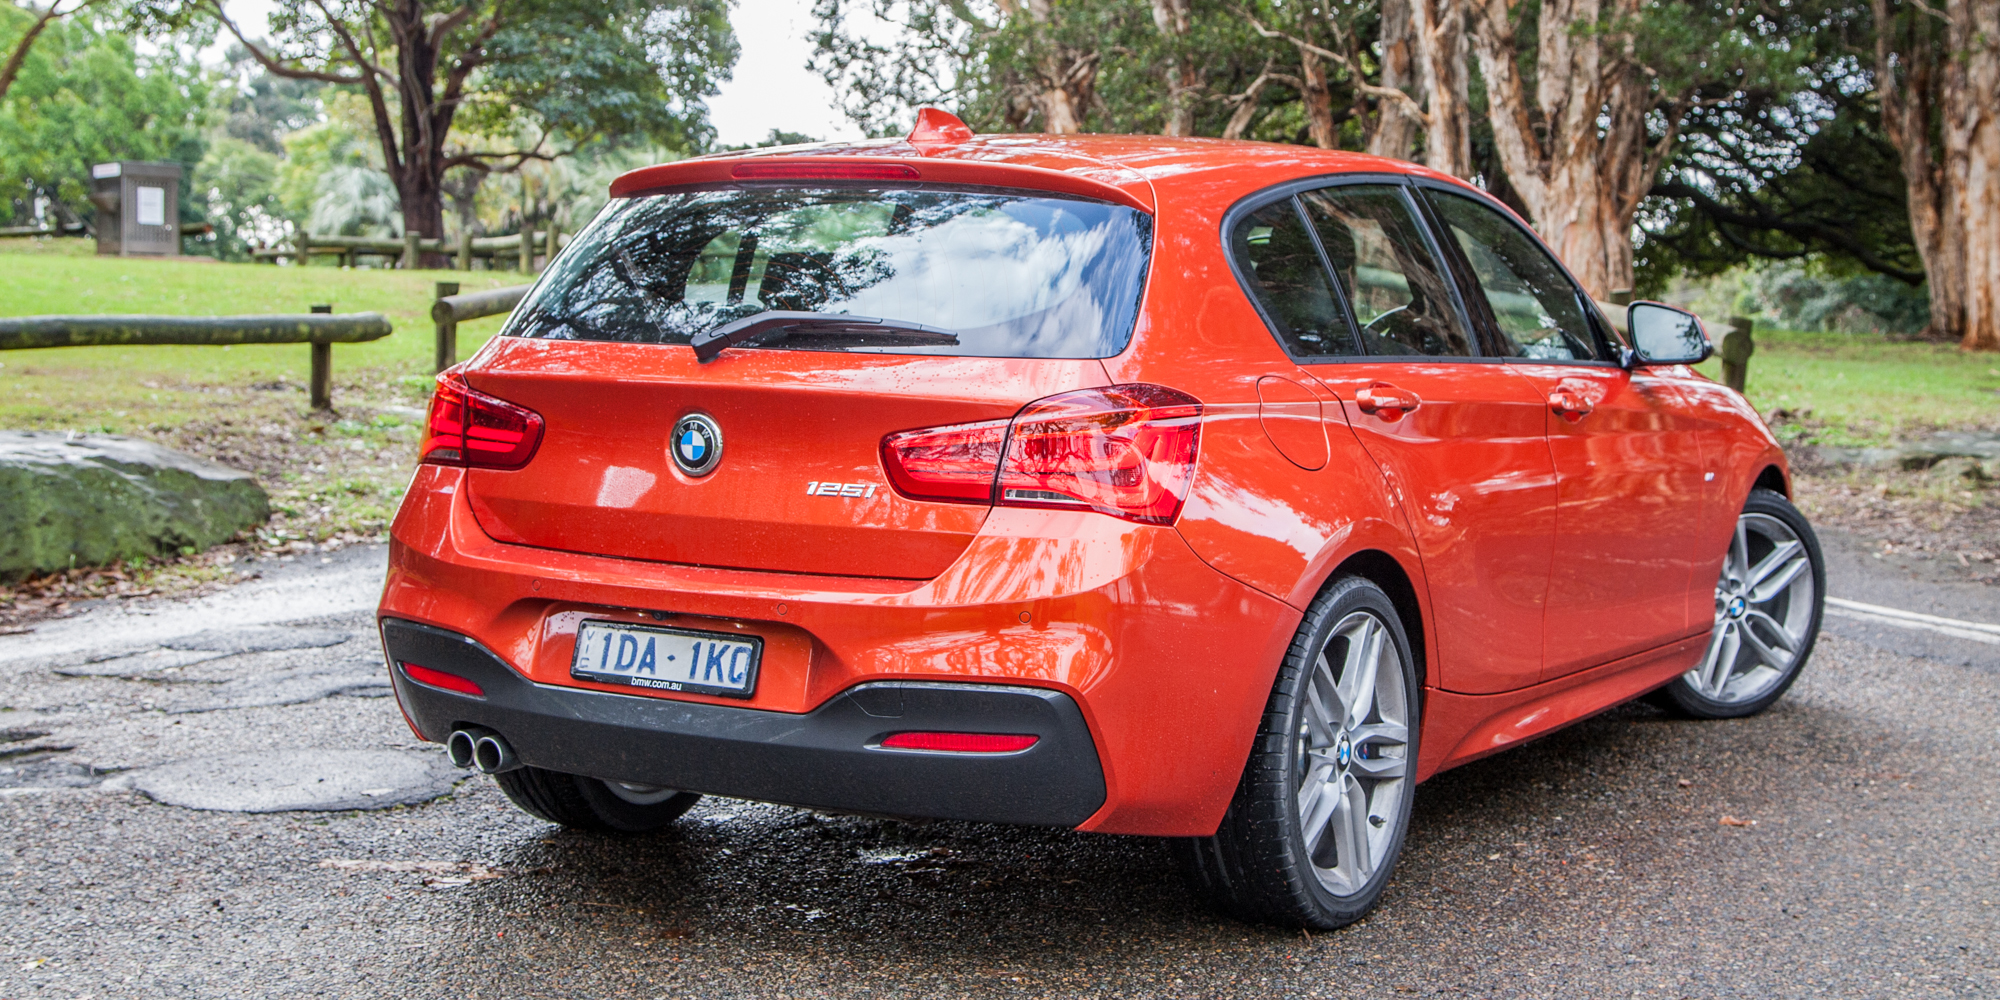 2015 Bmw 125i Rear Side (Photo 12 of 15)